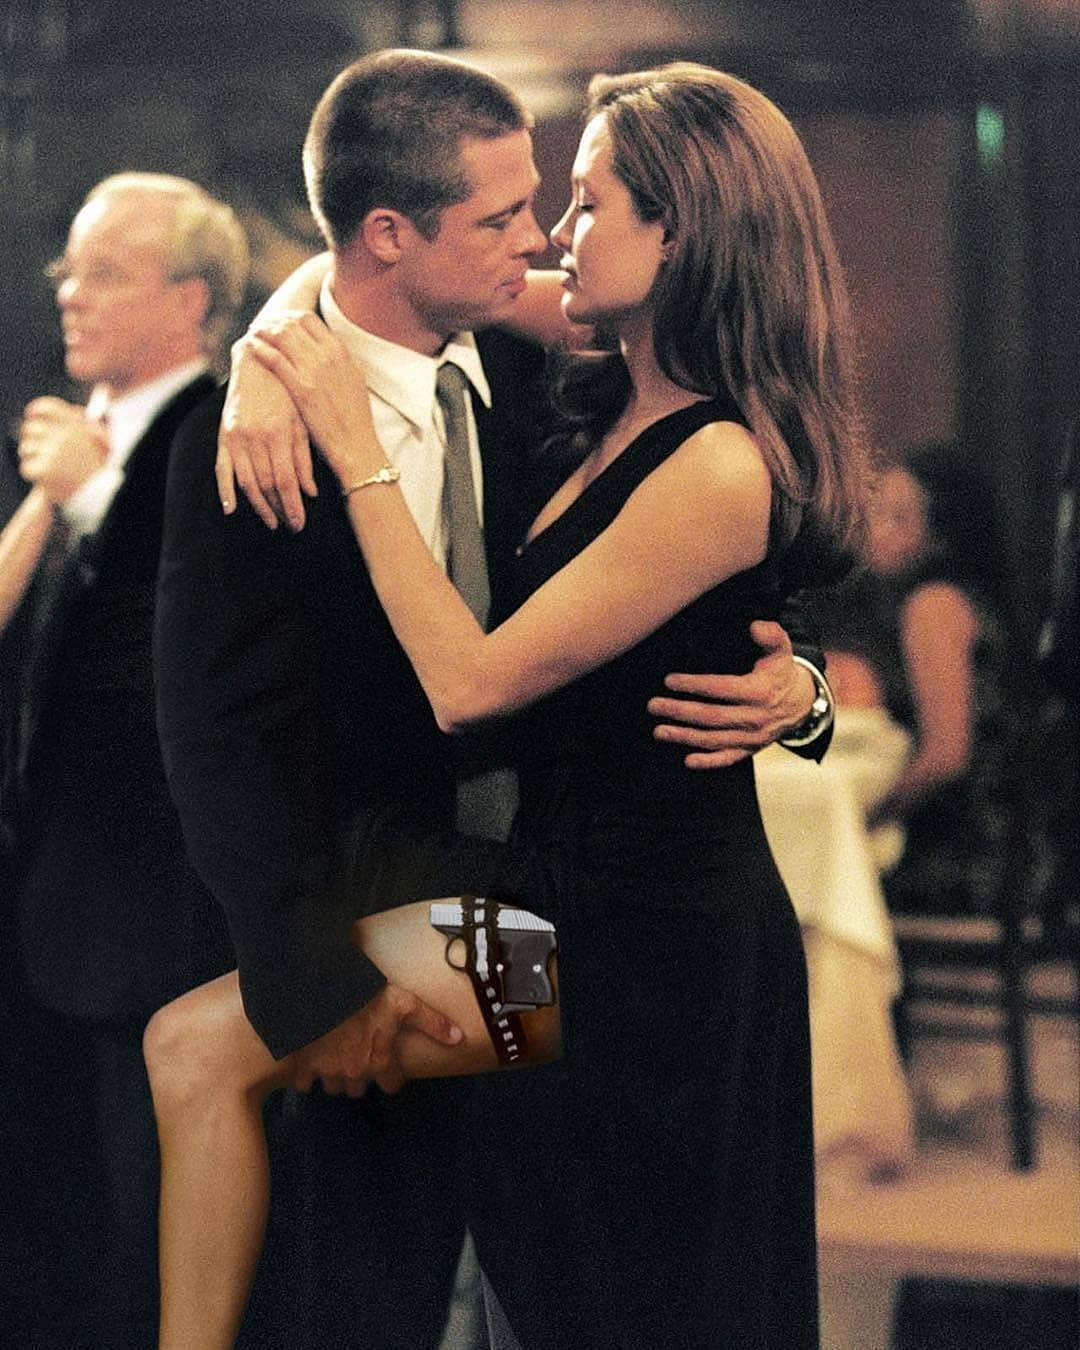 A still from the movie Mr. And Mrs. Smith.